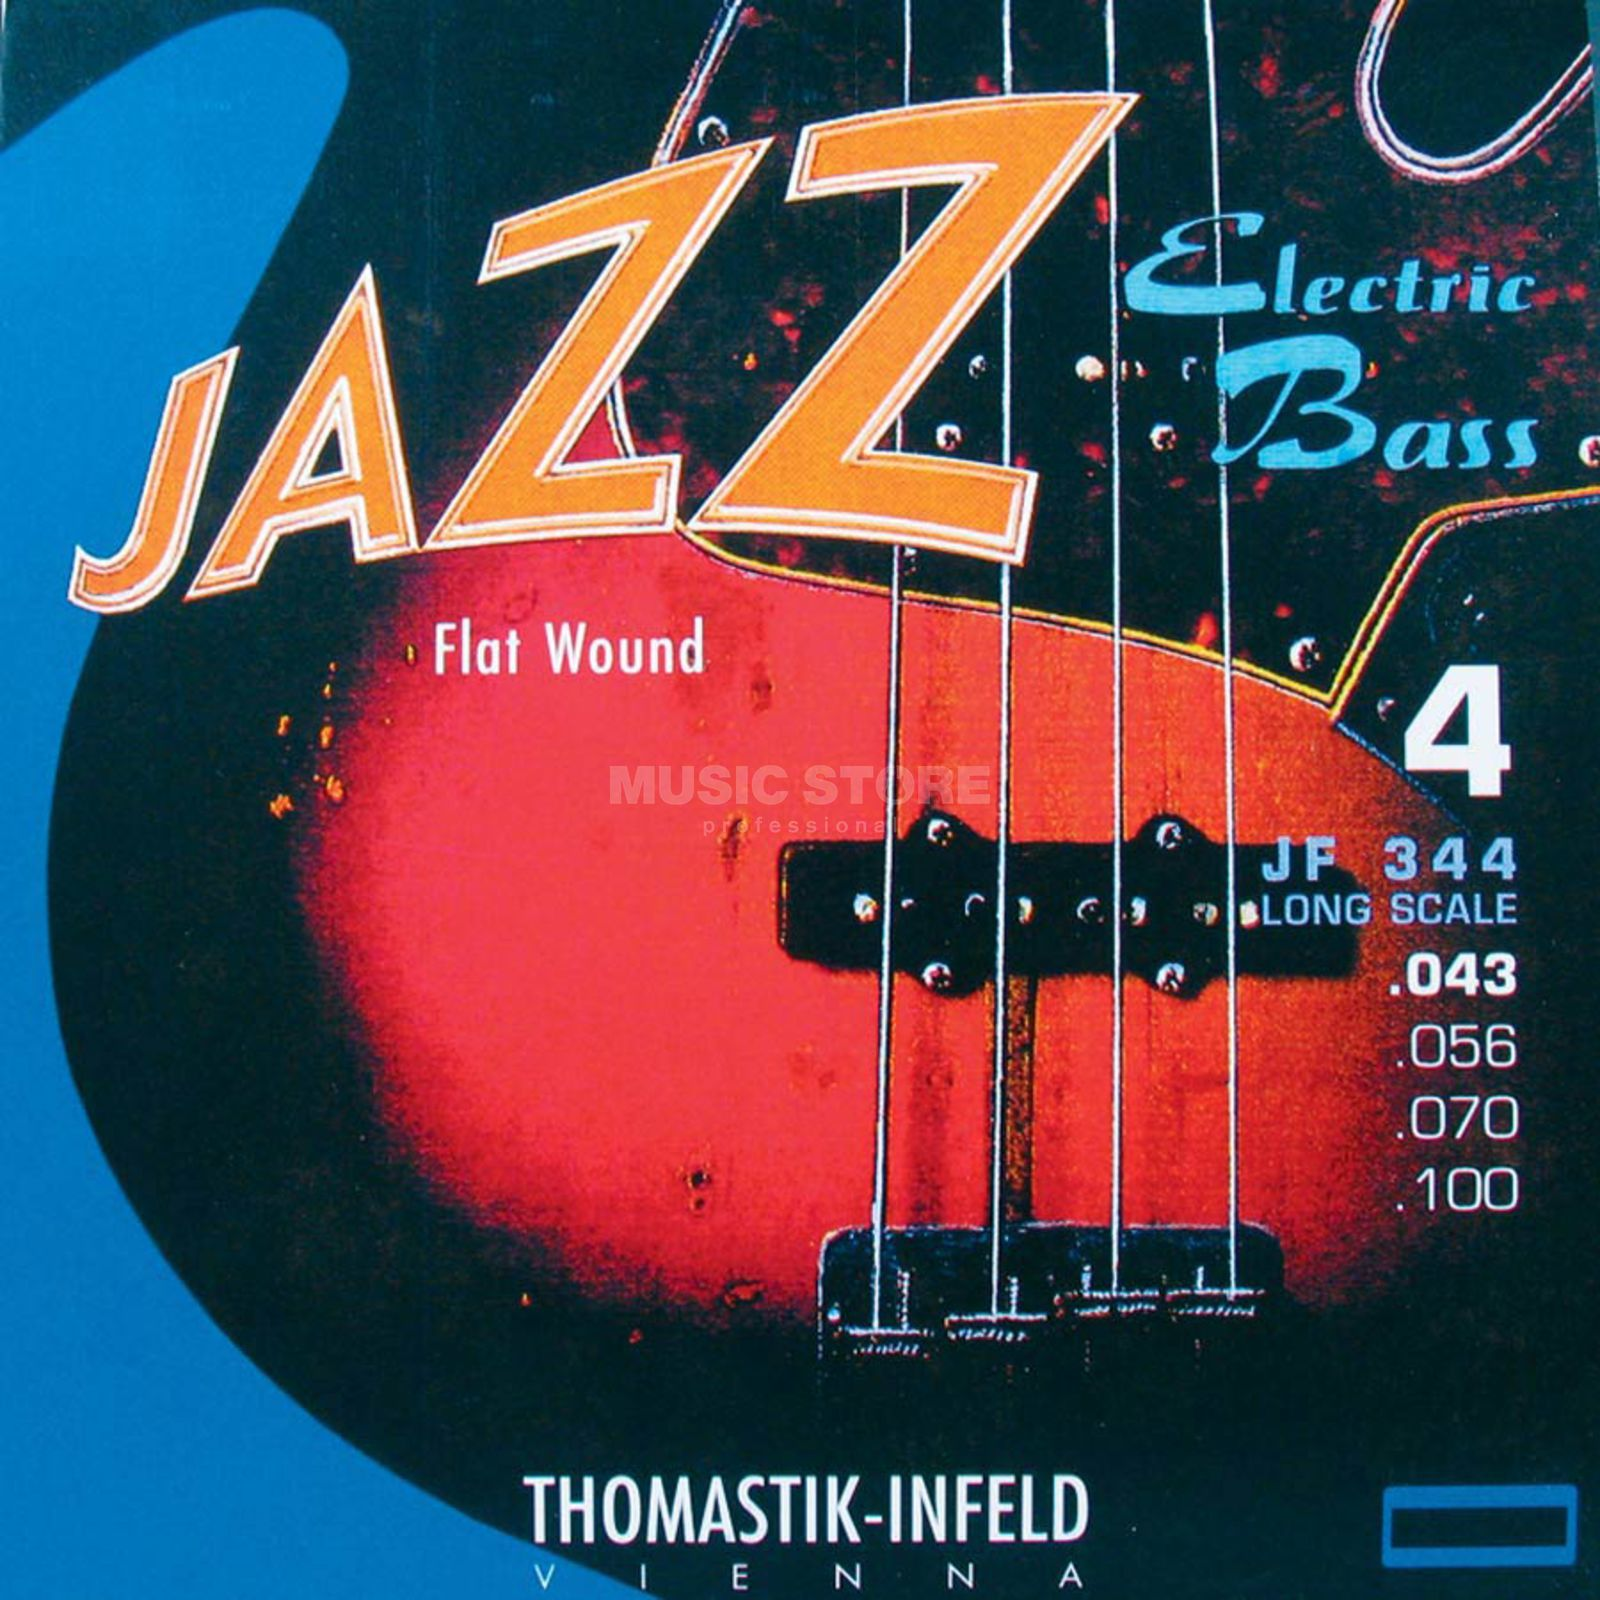 Thomastik 4 Bass Strings JF 344 43-100 Nickel Flat Wound Produktbillede